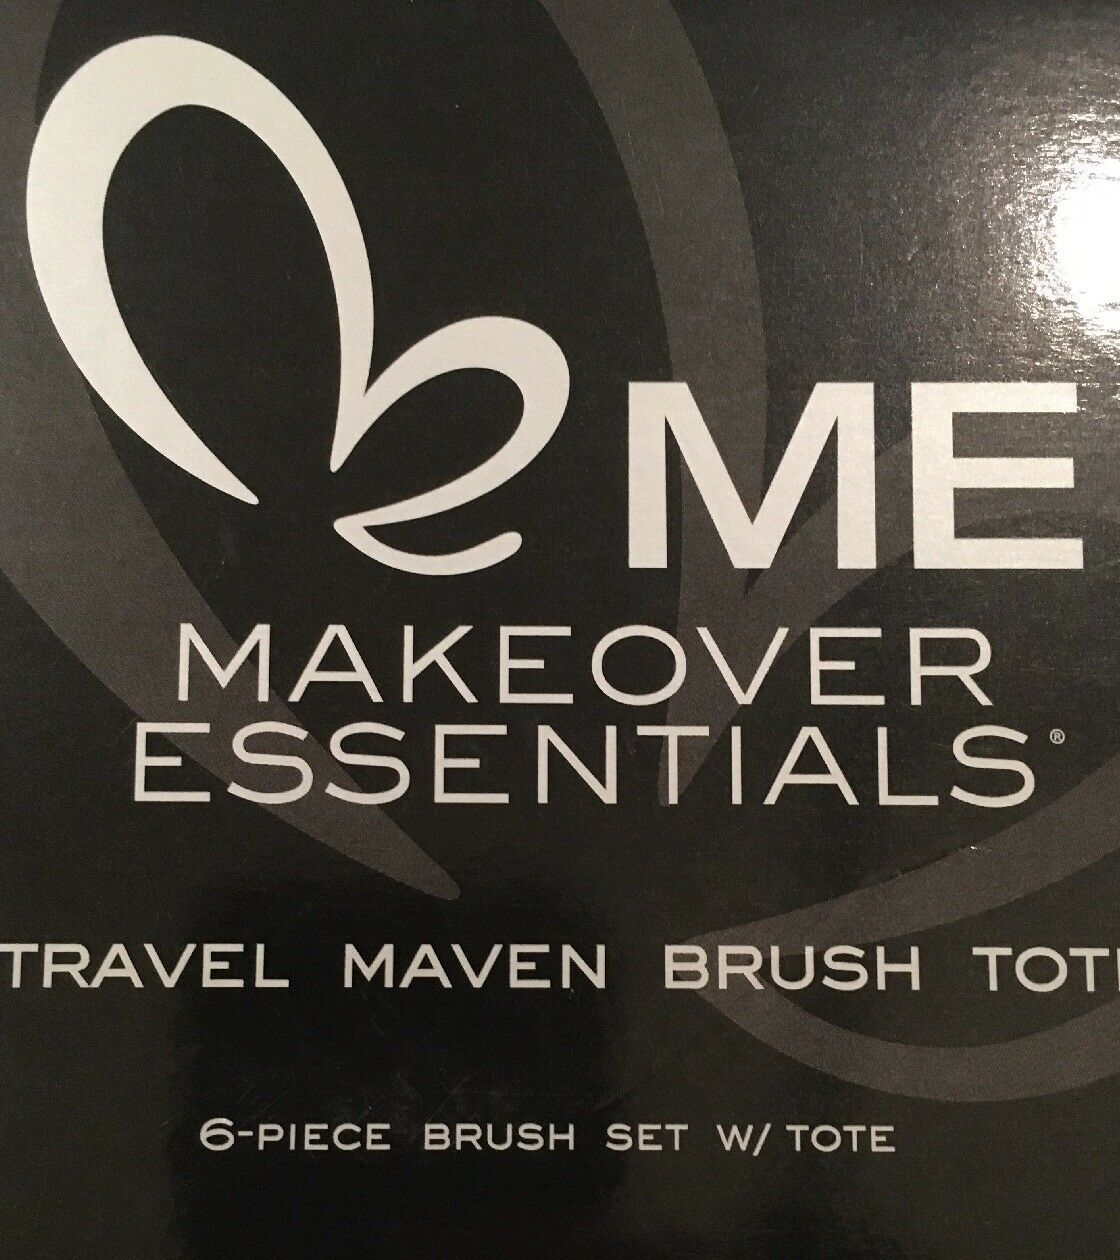 ME Makeover Essentials travel maven brush tote - NEW - 6 pc brush set with  tote